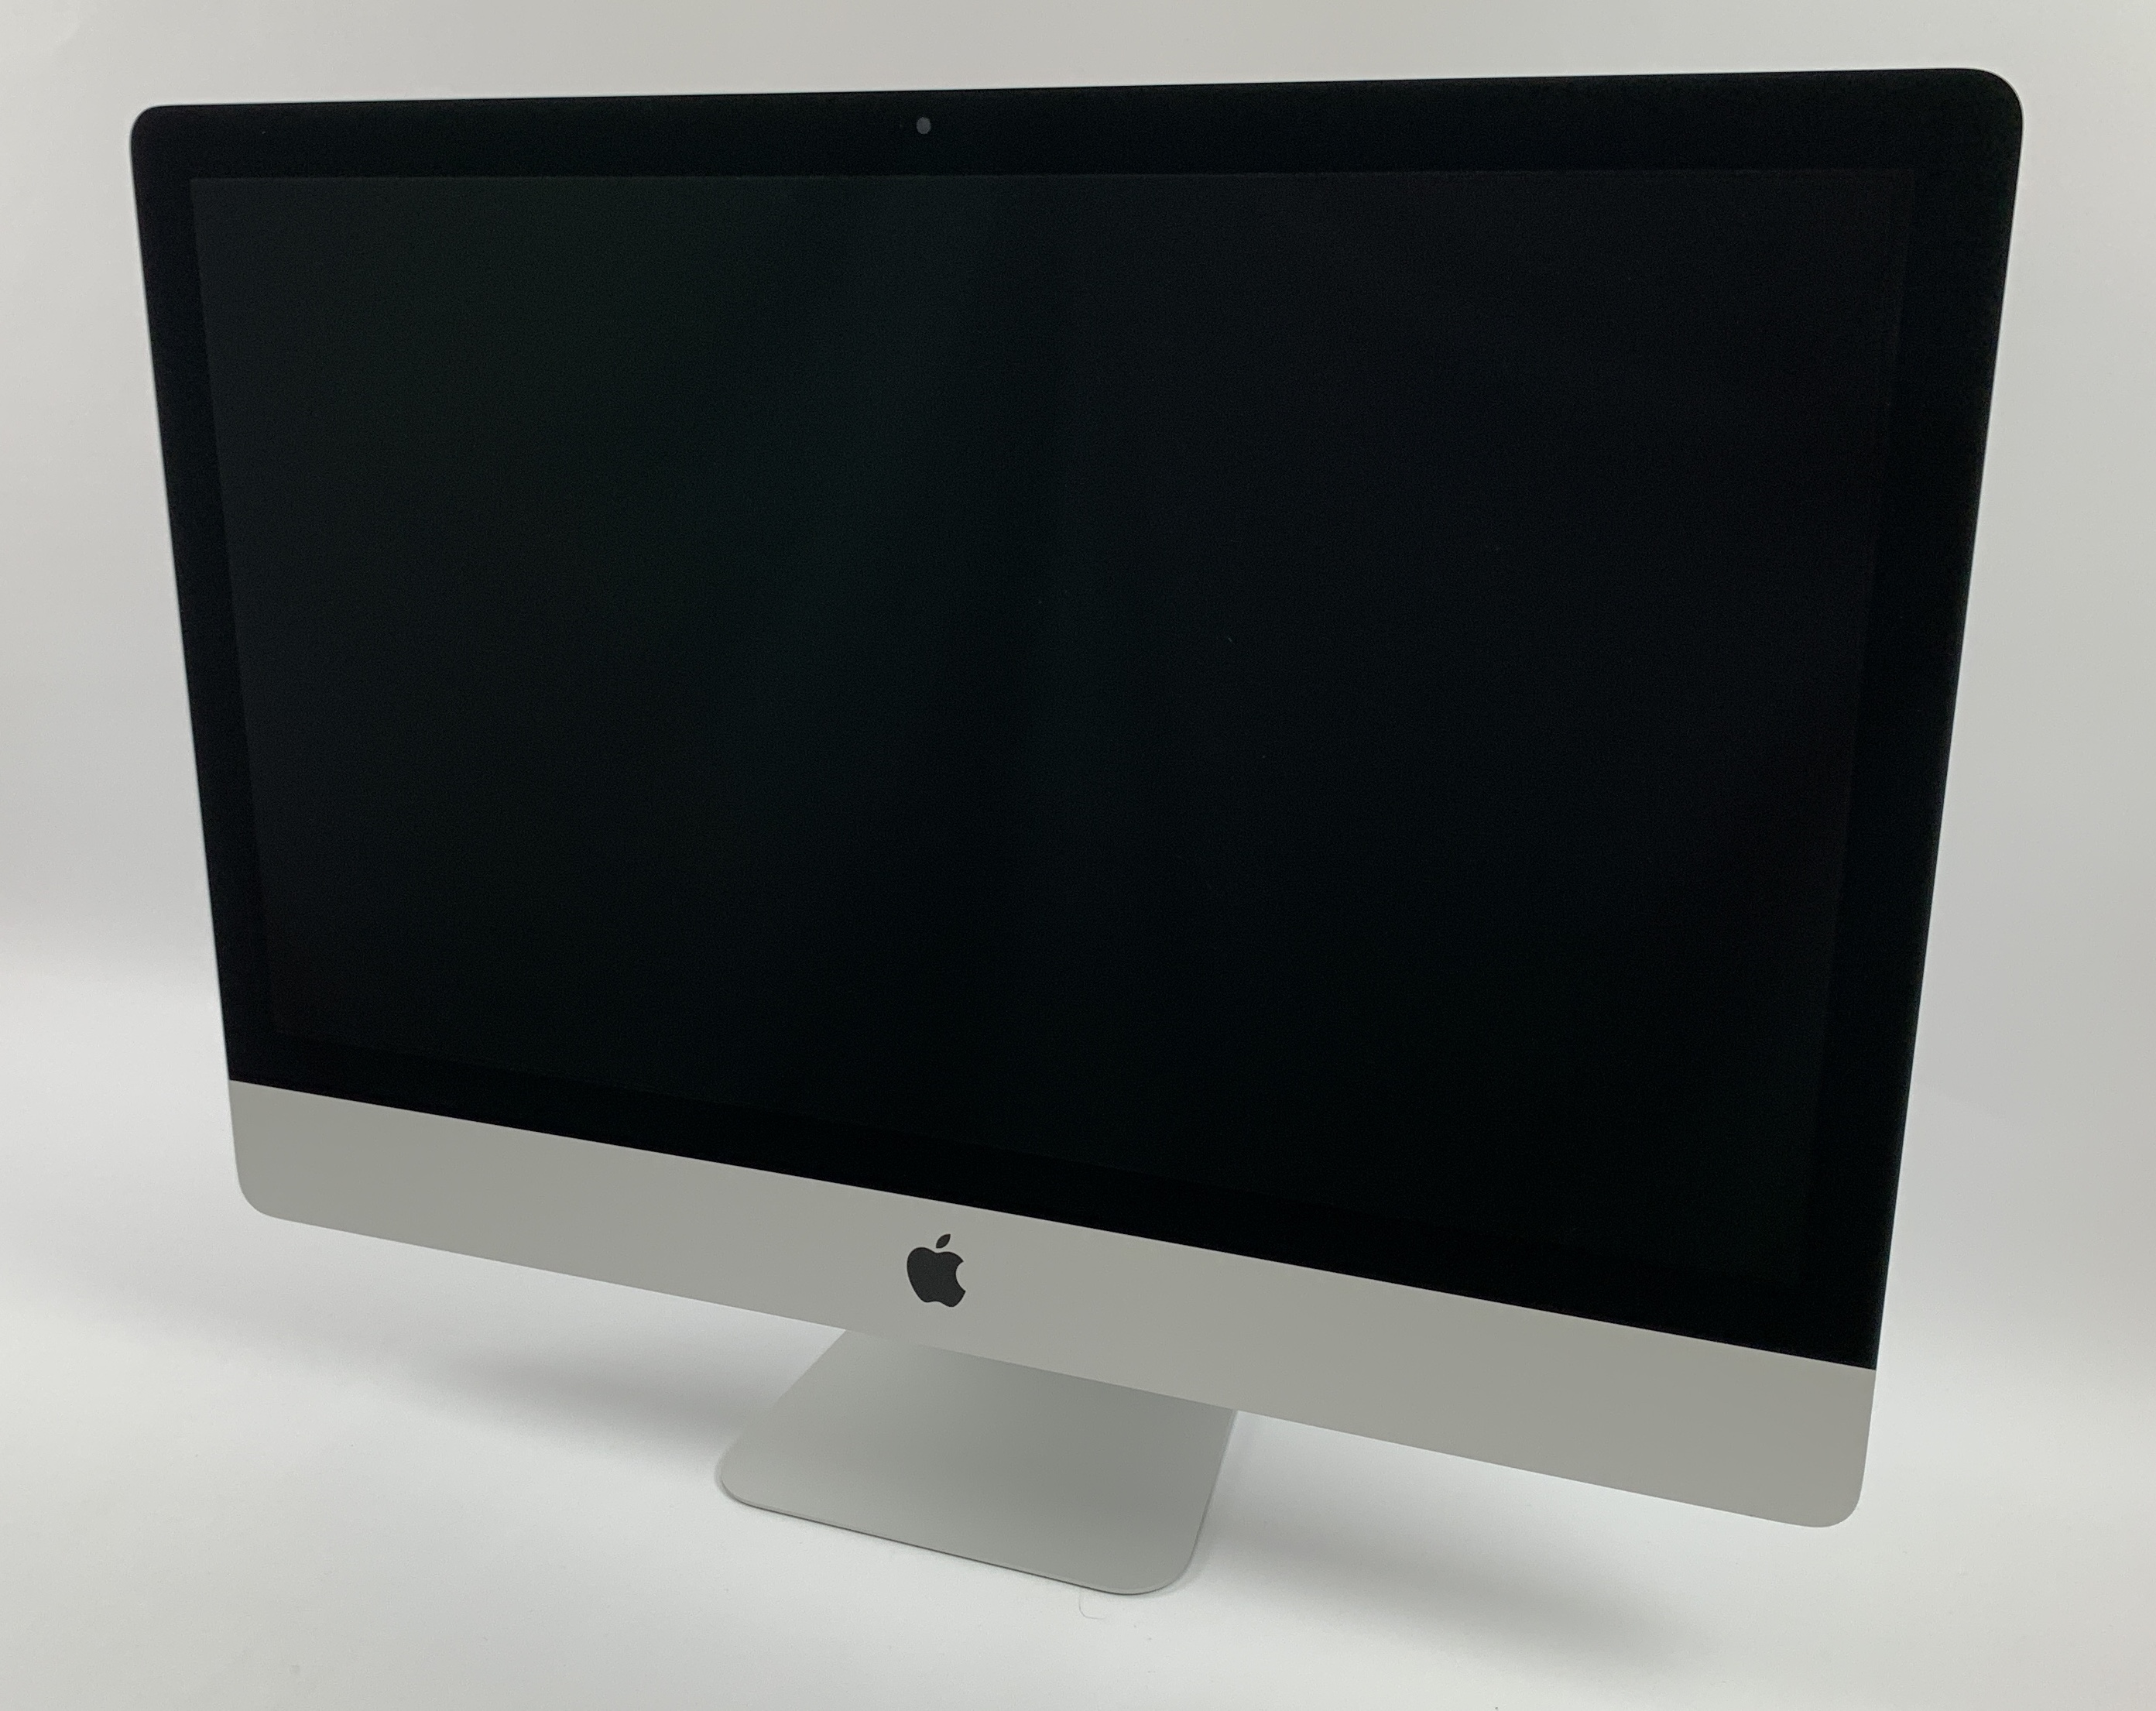 "iMac 21.5"" Retina 4K Early 2019 (Intel Quad-Core i3 3.6 GHz 32 GB RAM 1 TB SSD), Intel Quad-Core i3 3.6 GHz, 32 GB RAM, 2TB SSD (Third-Party), bild 1"